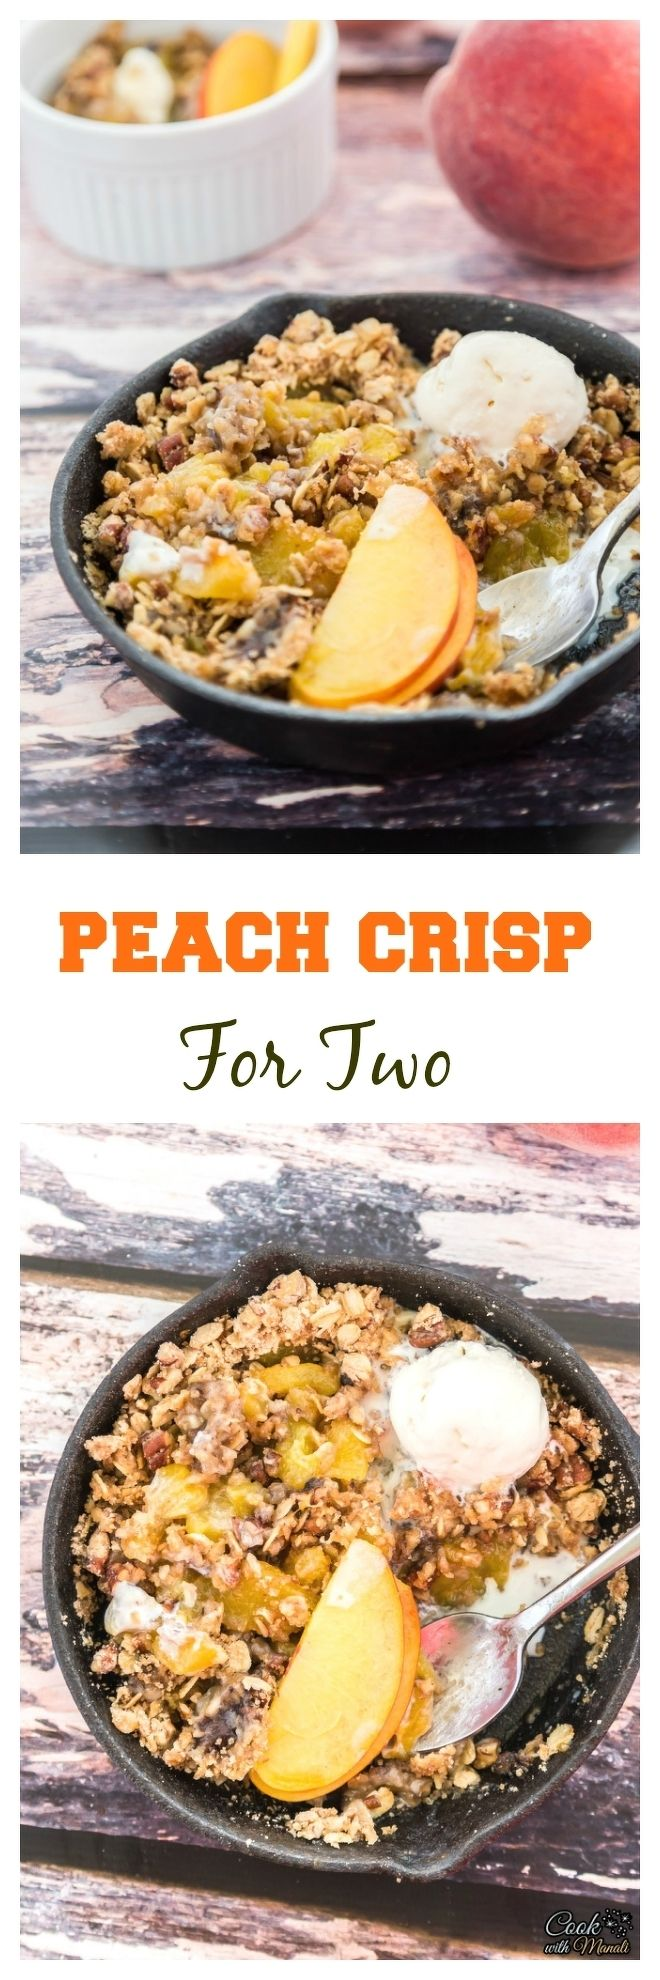 Peach Crisp For Two Collage-nocwm